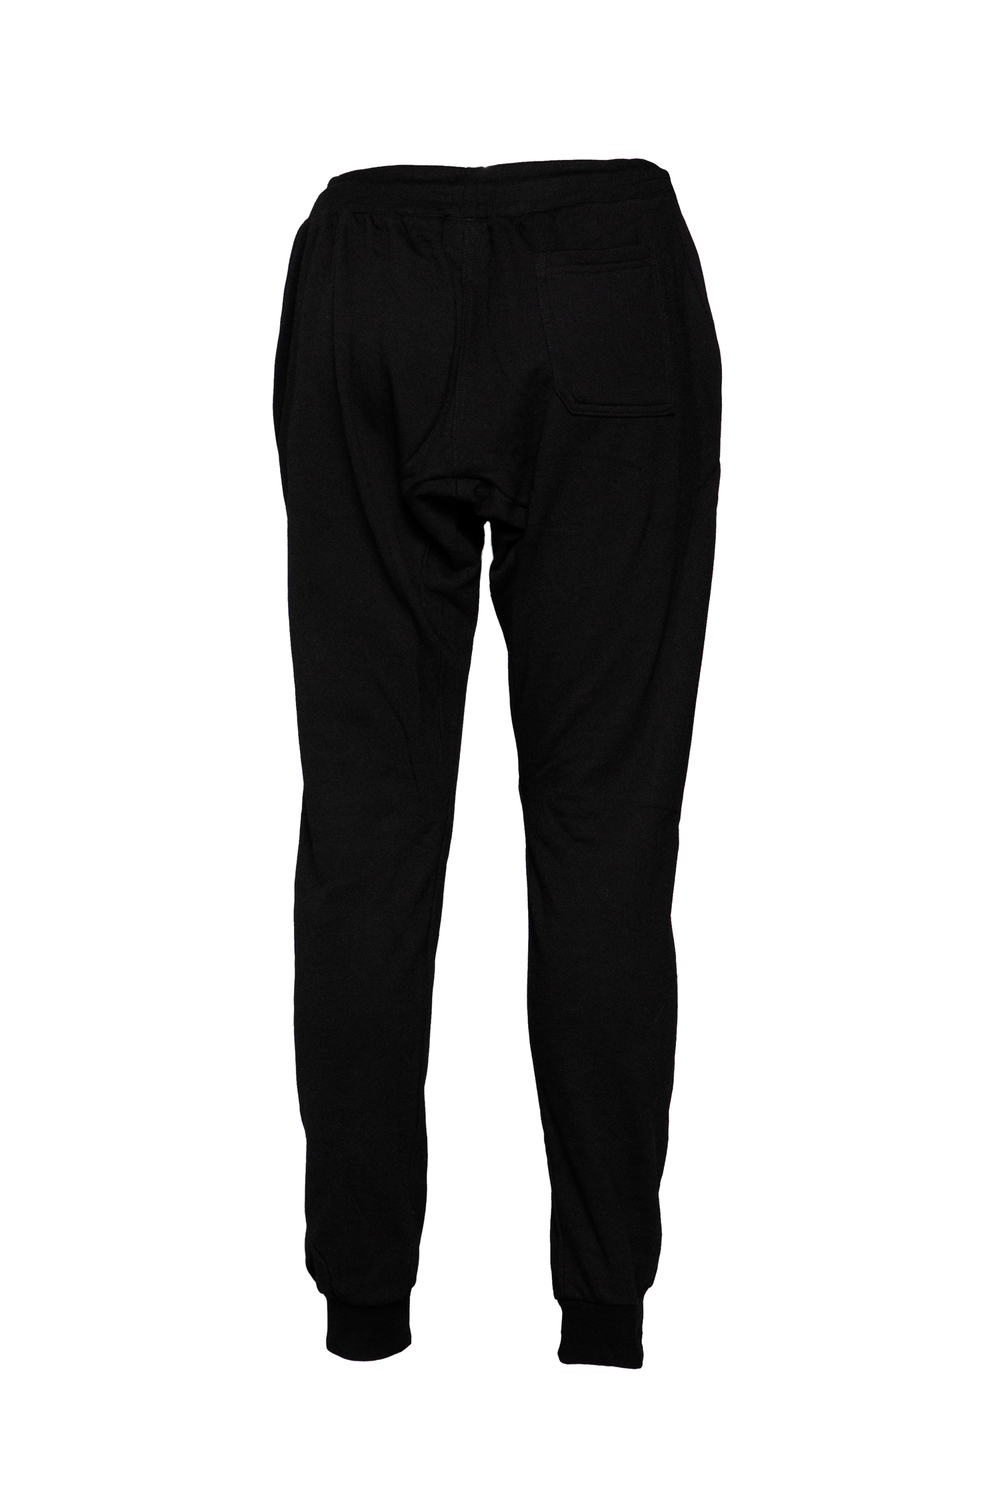 _SVIPE Sport Sweats - Black/Neon